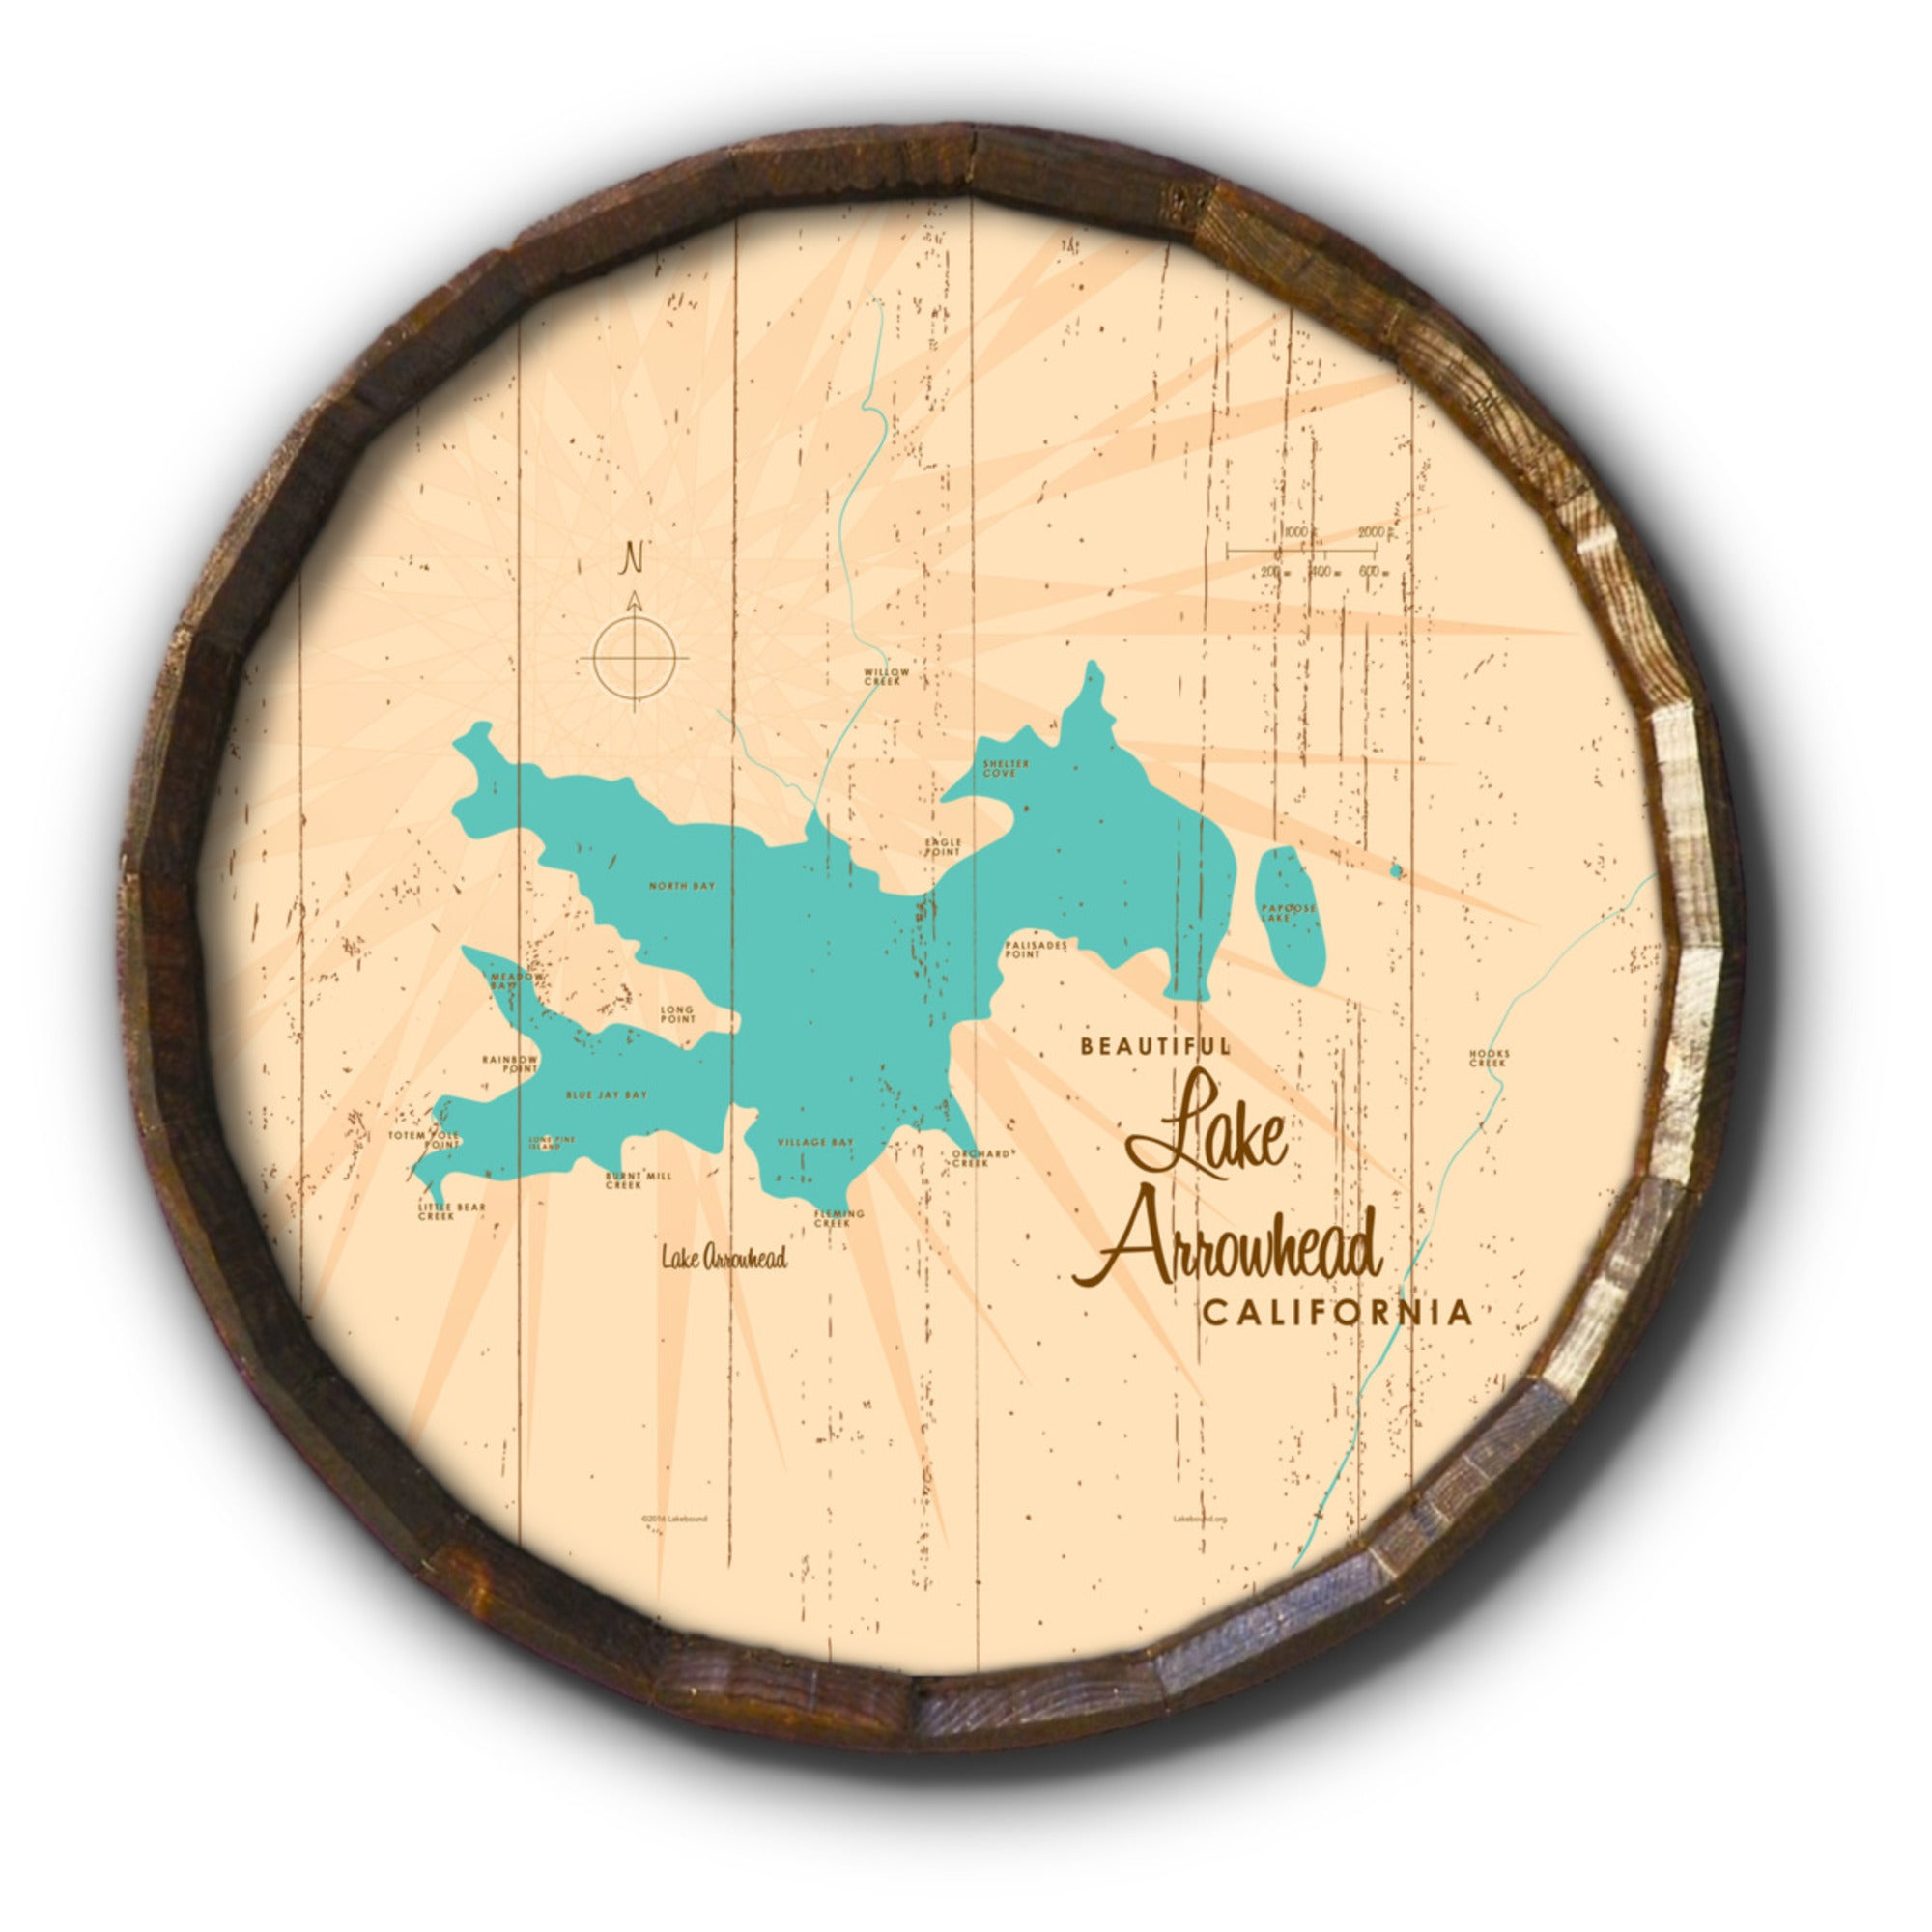 Lake Arrowhead California, Rustic Barrel End Map Art